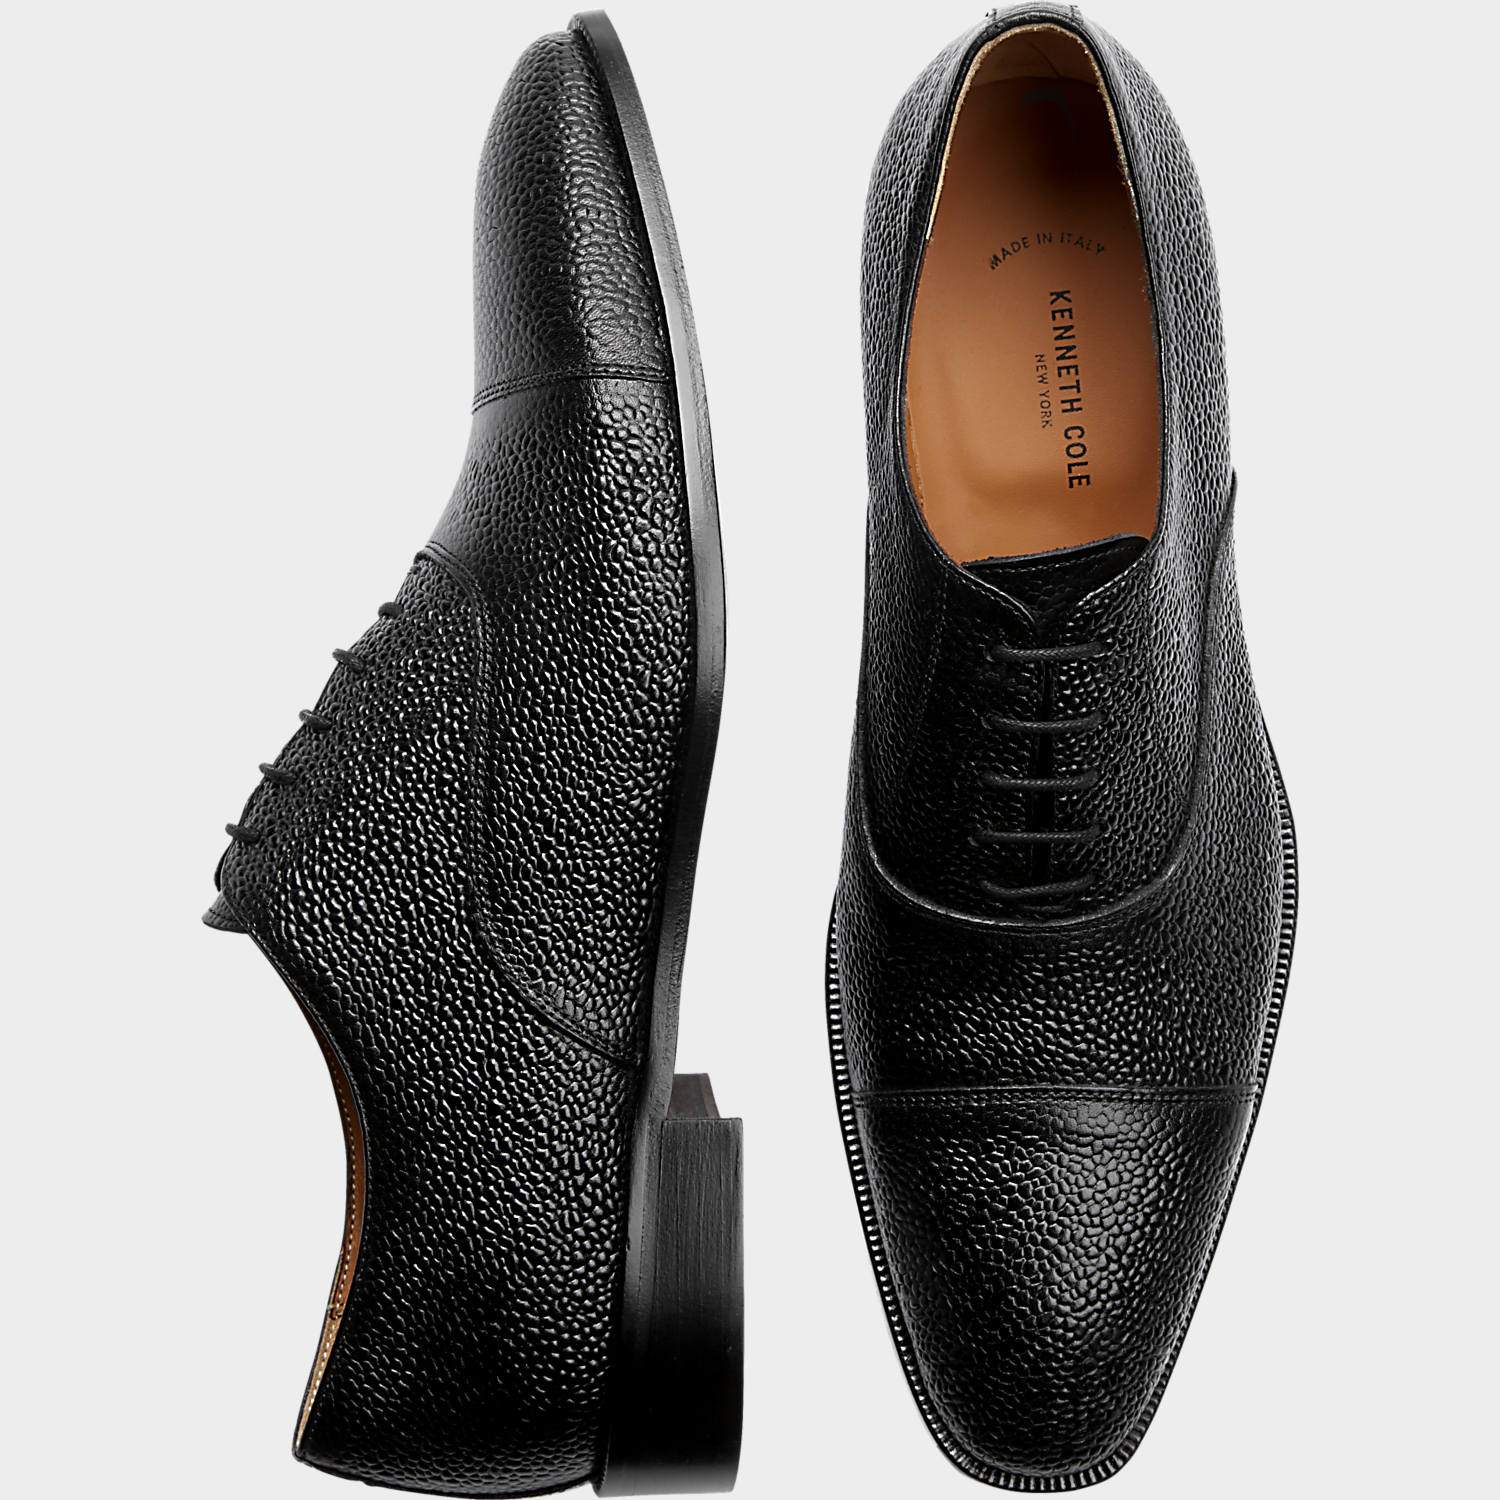 Black shoes – A Colour for everyone